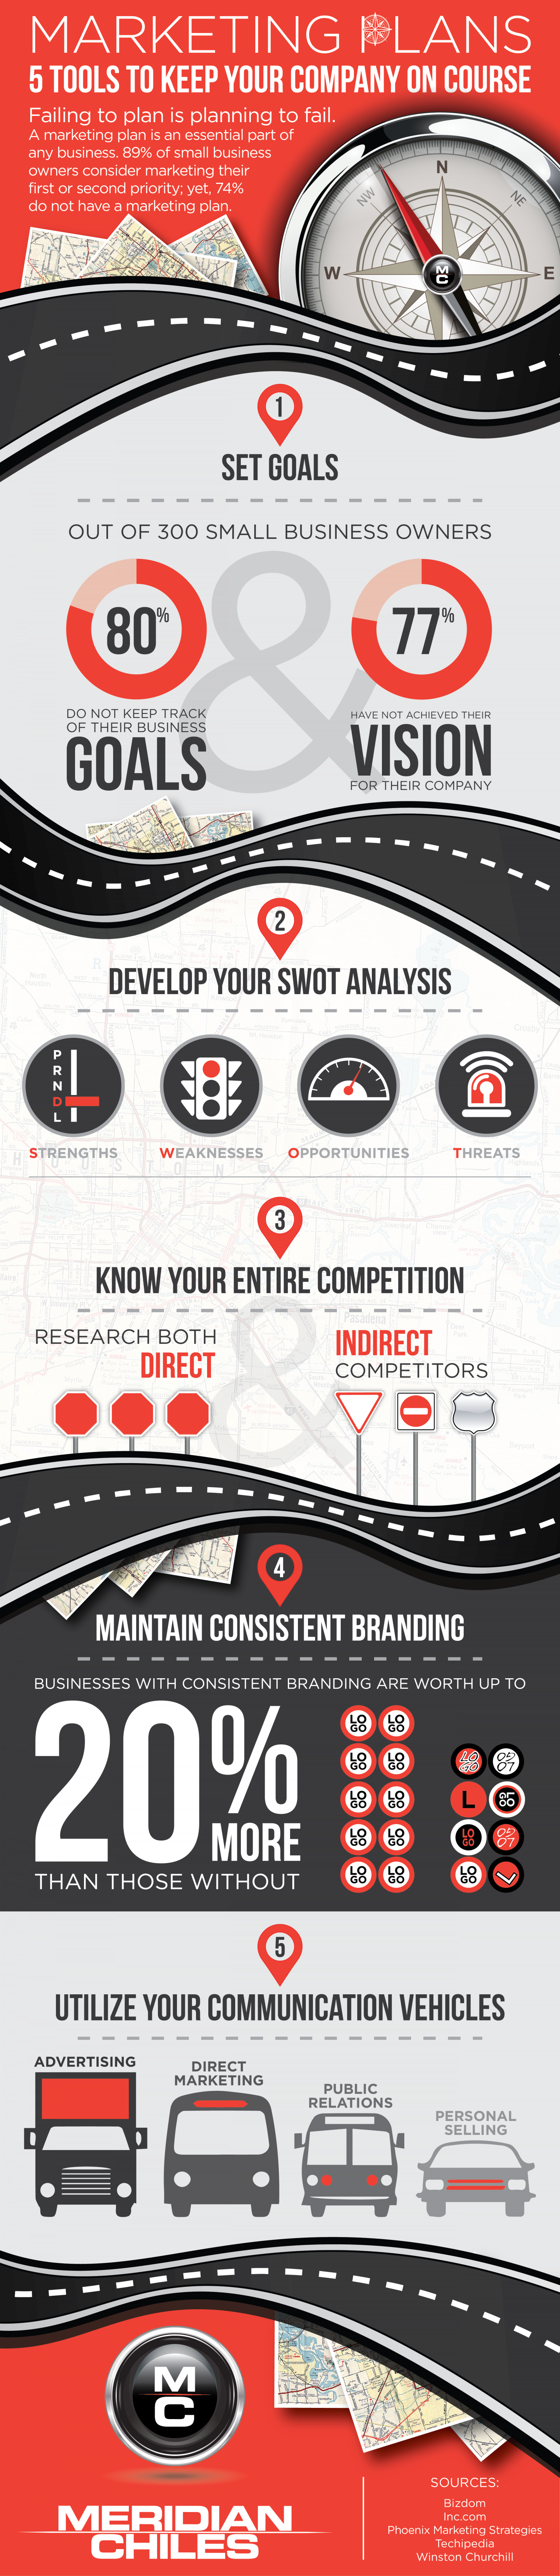 Marketing Plans: 5 Tools to Keep Your Company on Course Infographic